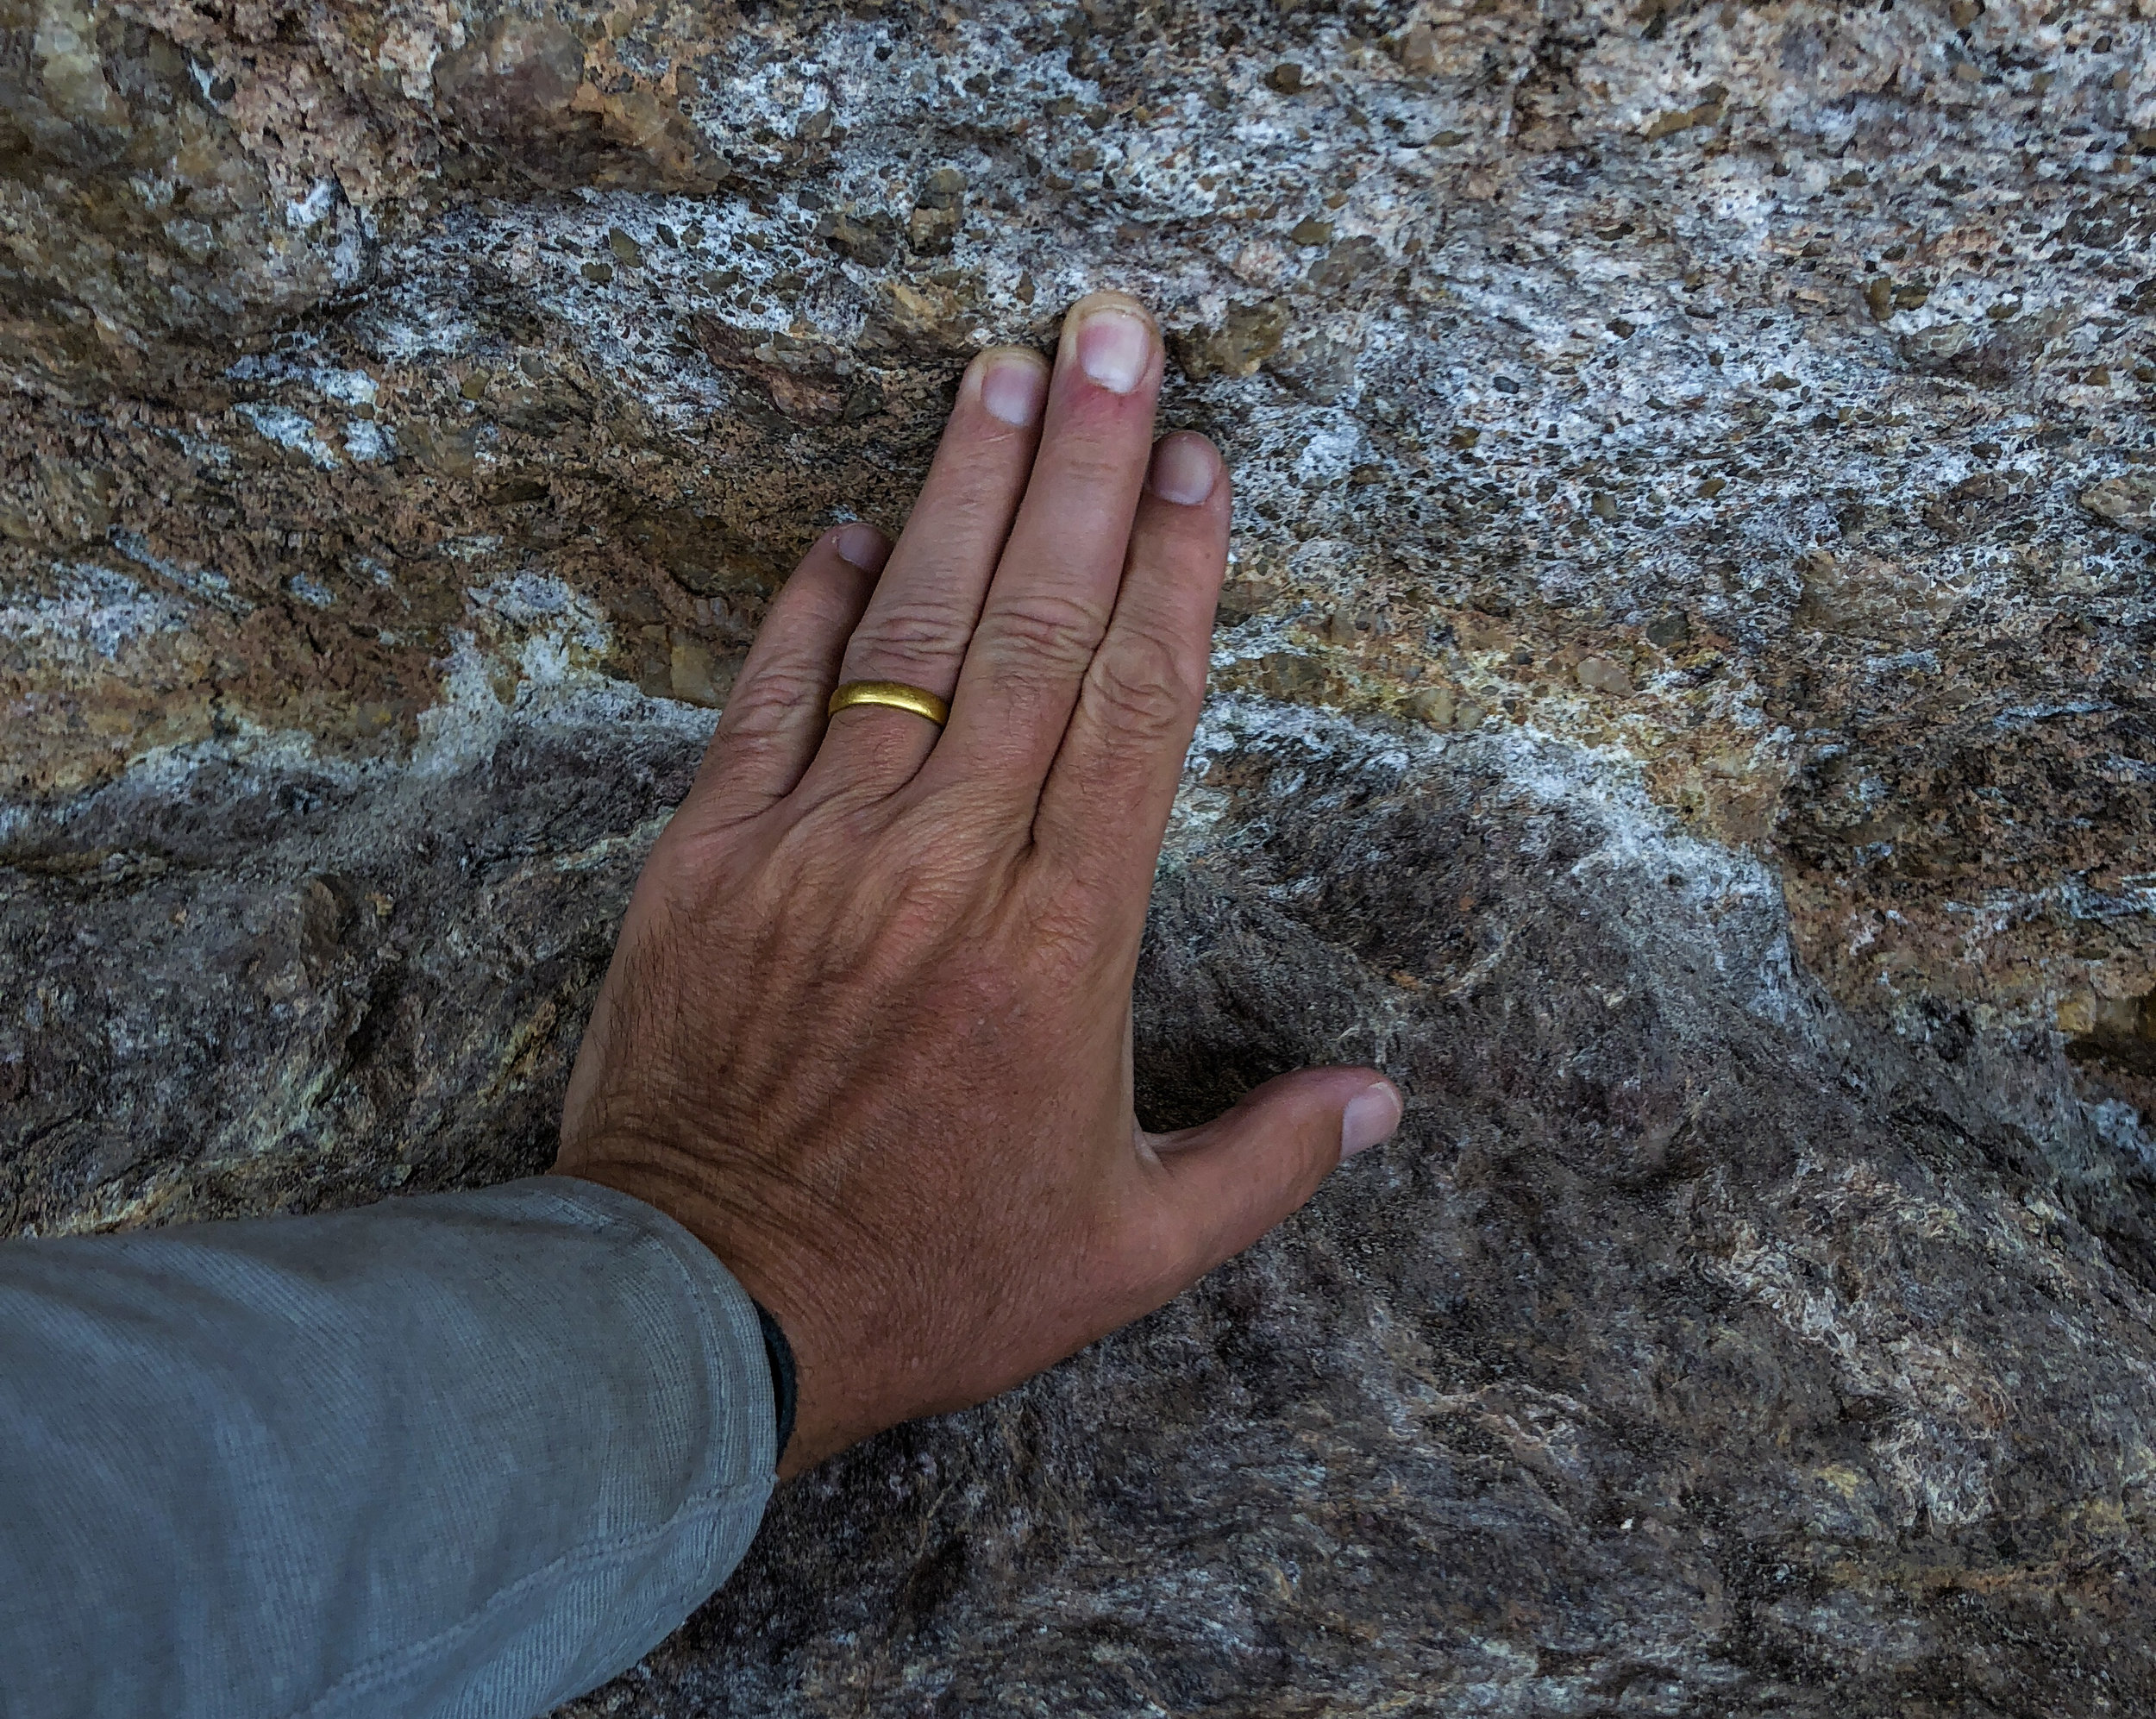 The Great Unconformity, over 1,000,000,000 years across my hand